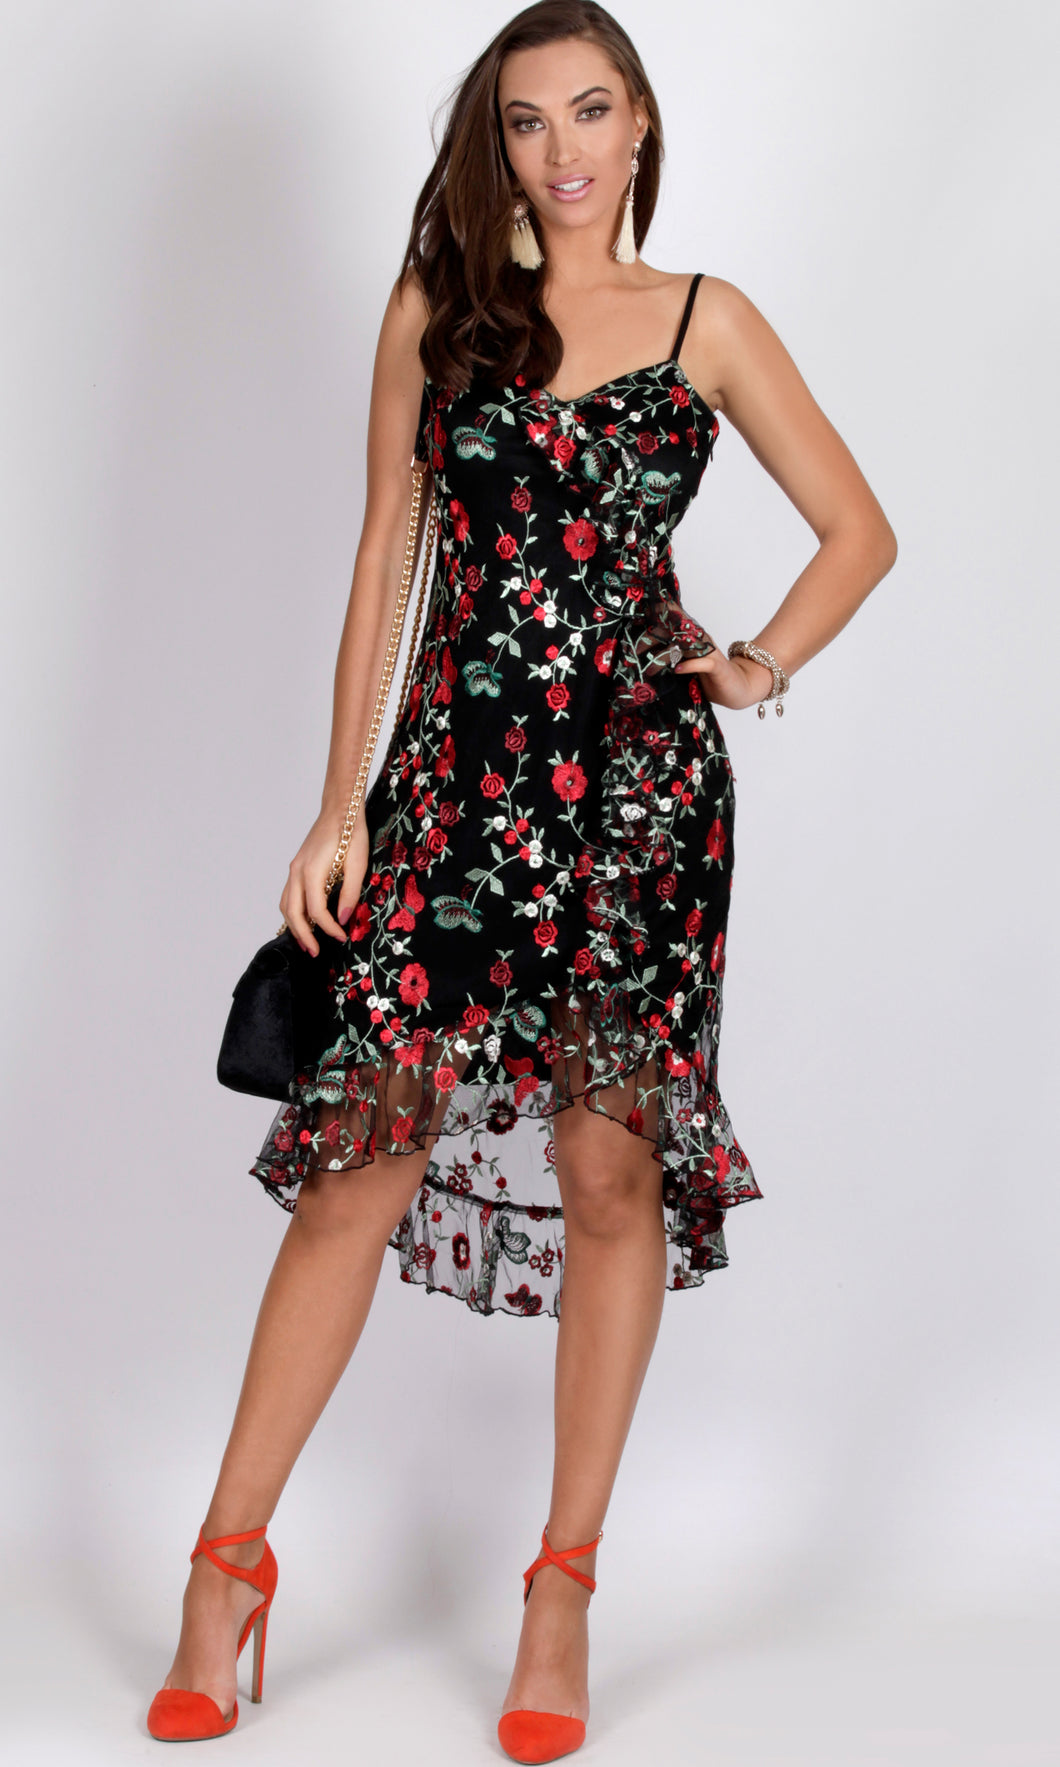 RC0830-1TE Embroidered Floral Mesh Dress (Pack)